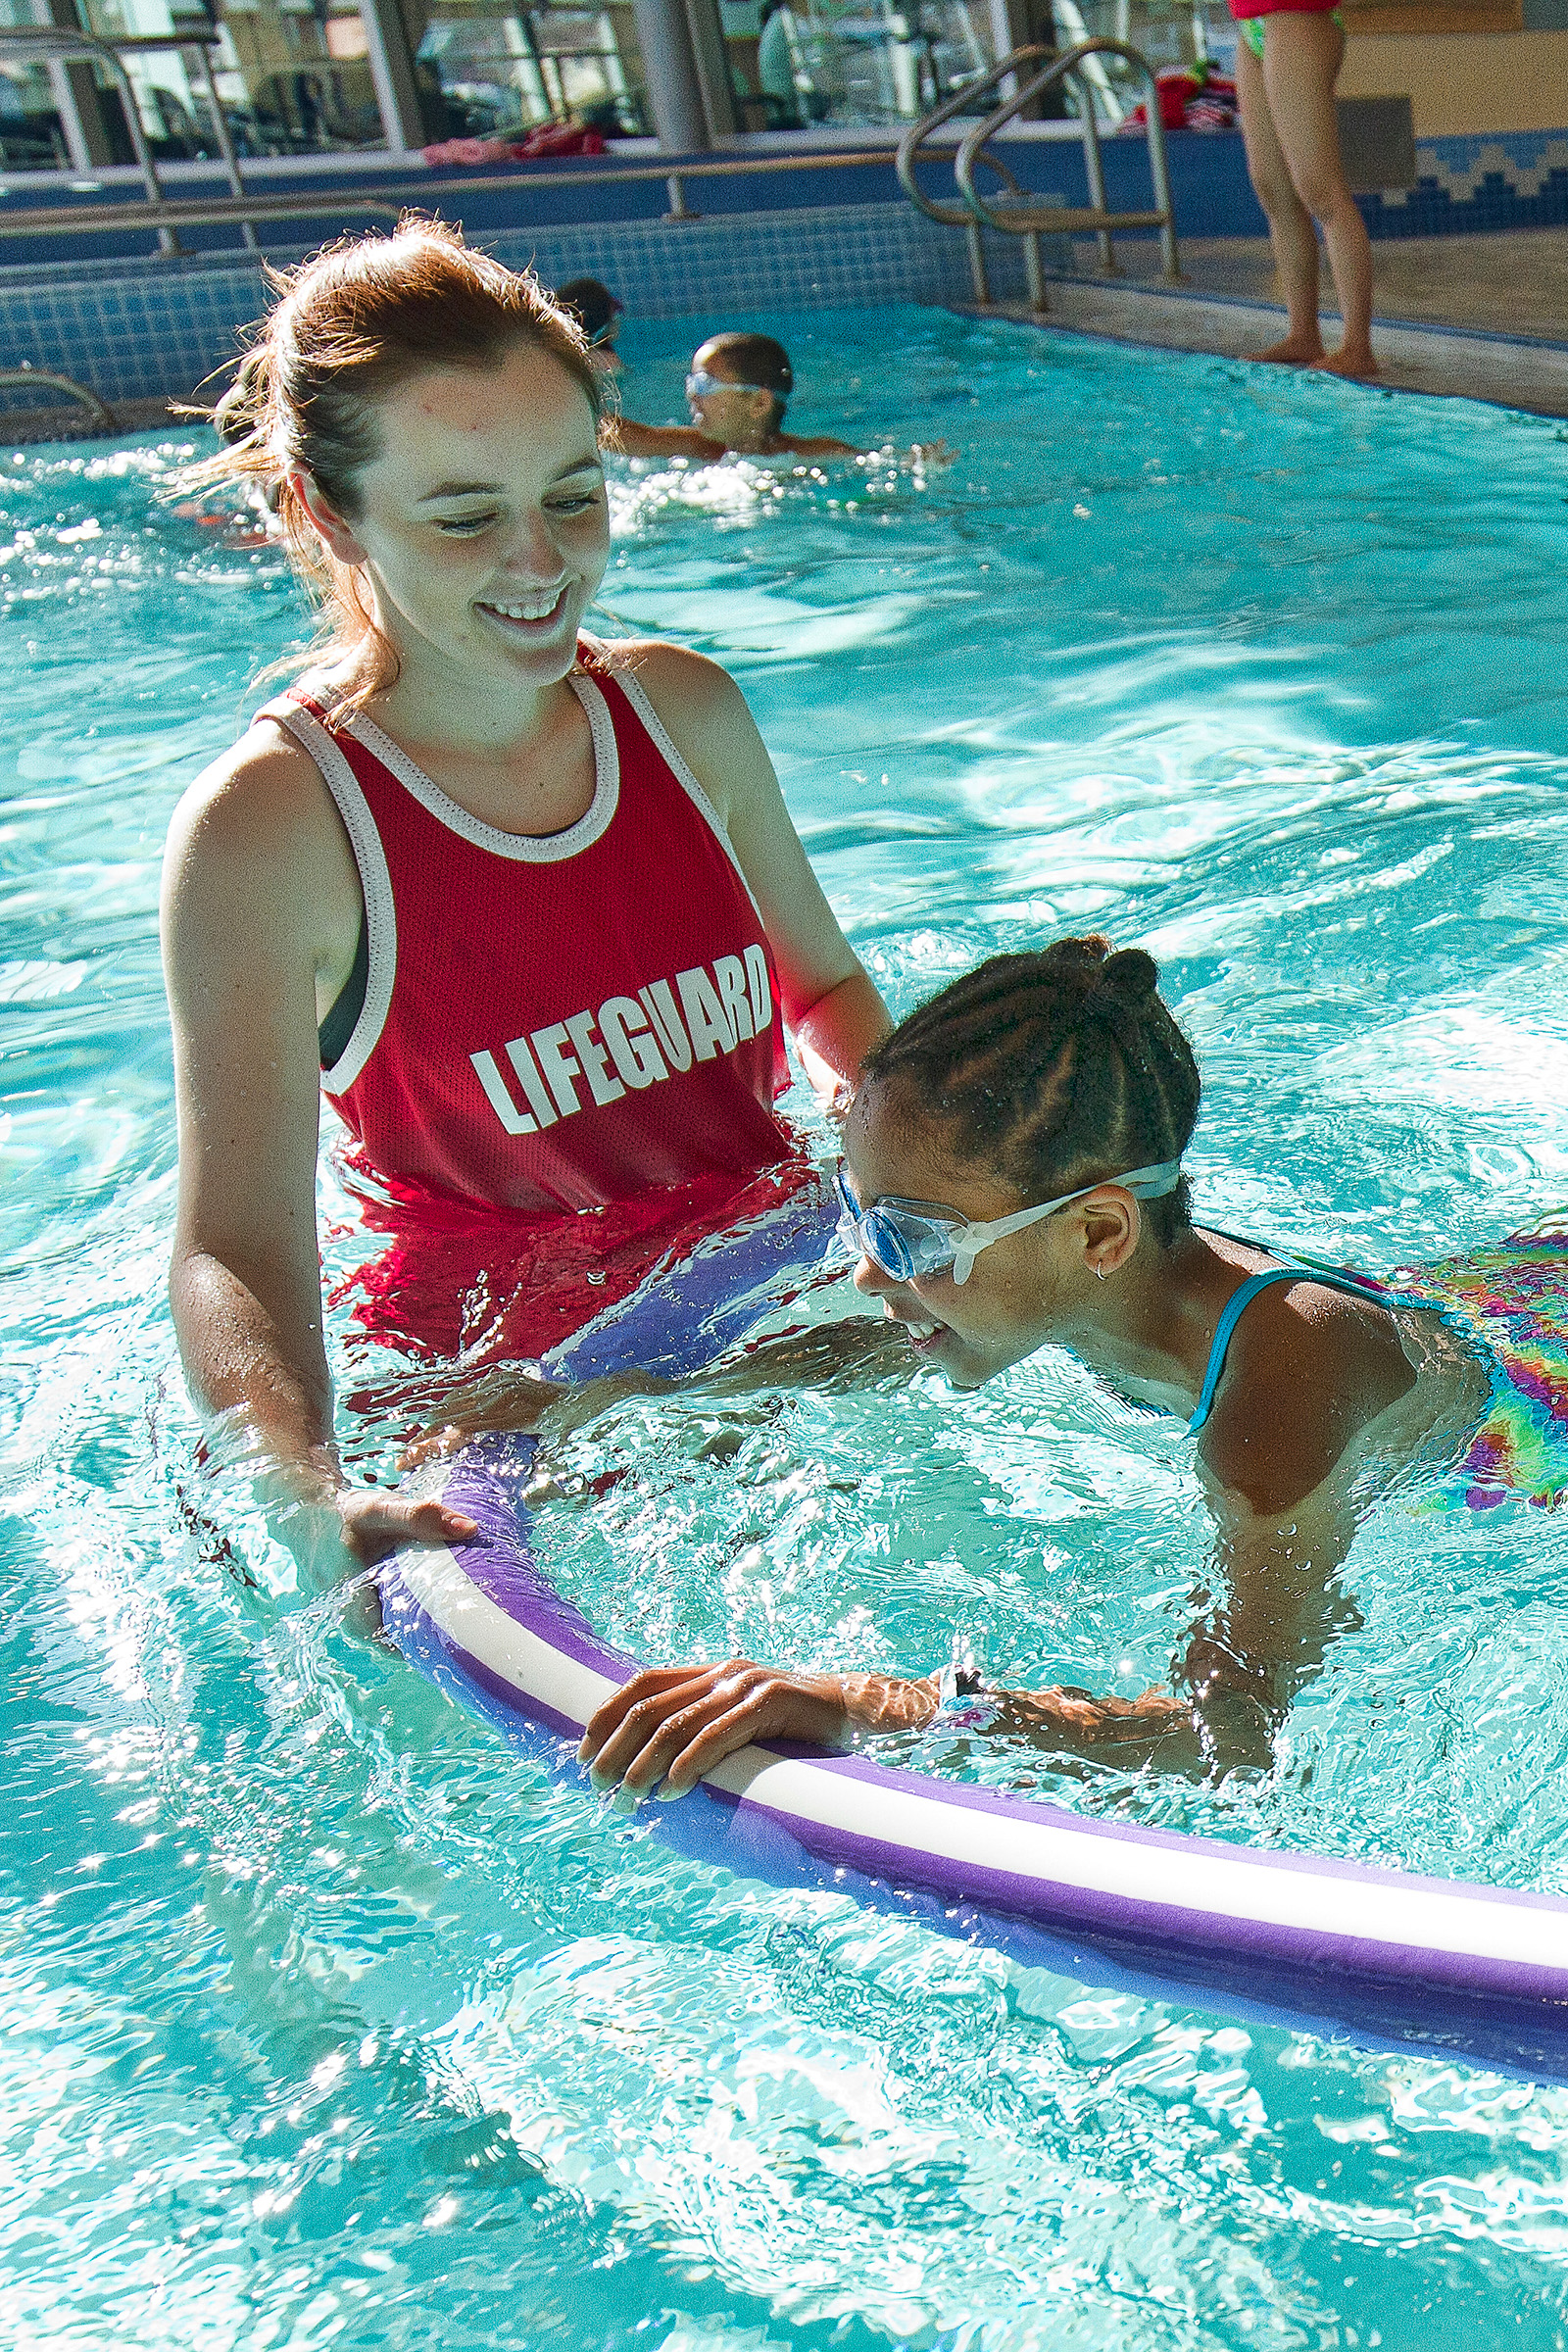 Image of lifeguard and young swimmer